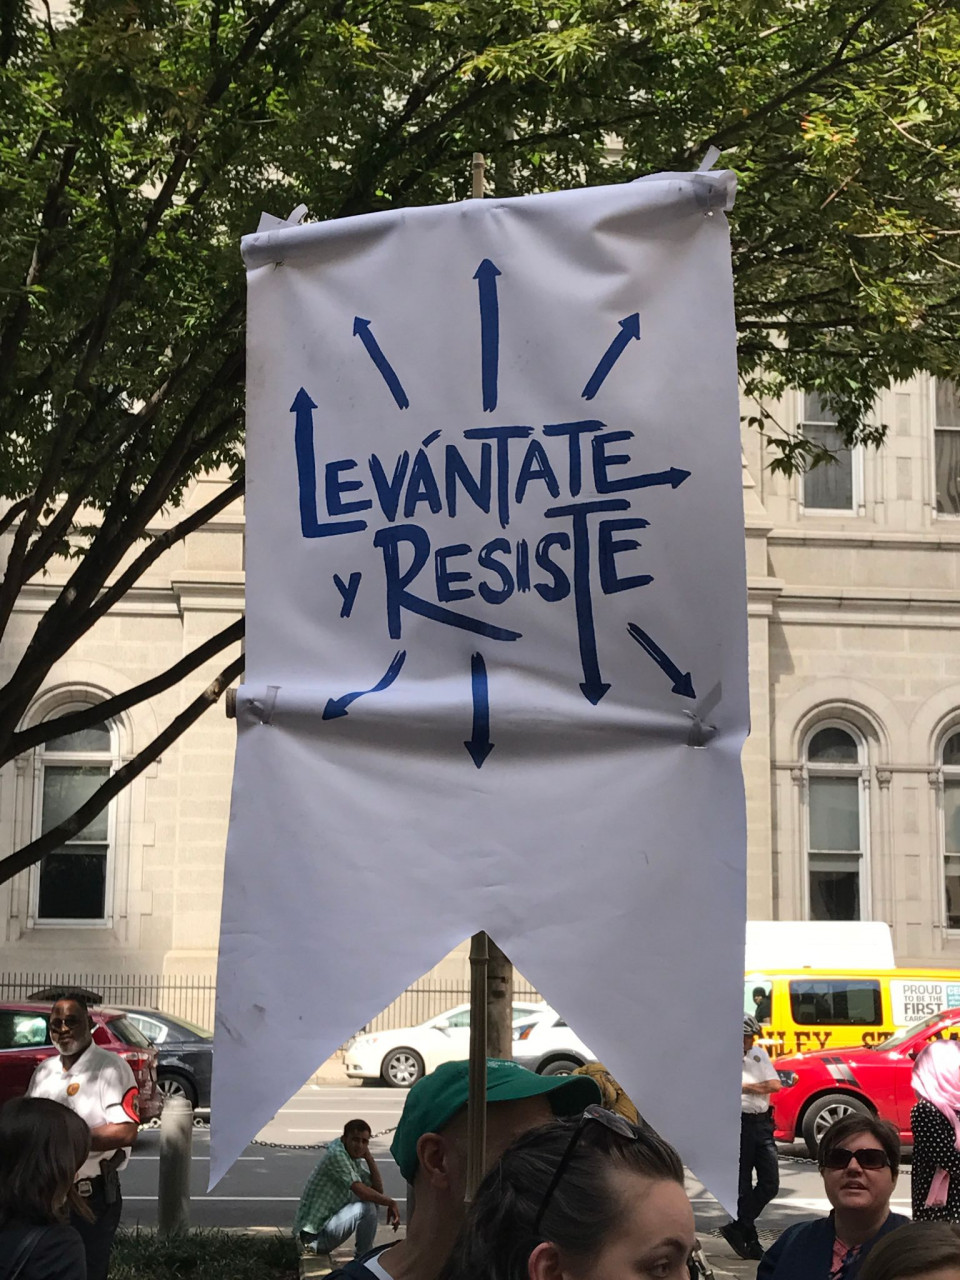 """<a class=""""bx-tag"""" rel=""""tag"""" href=""""https://wethepeople.care/page/view-channel-profile?id=654""""><s>#</s><b>DefendDACA</b></a> - September 7, 2017 - Levantate y Resiste"""